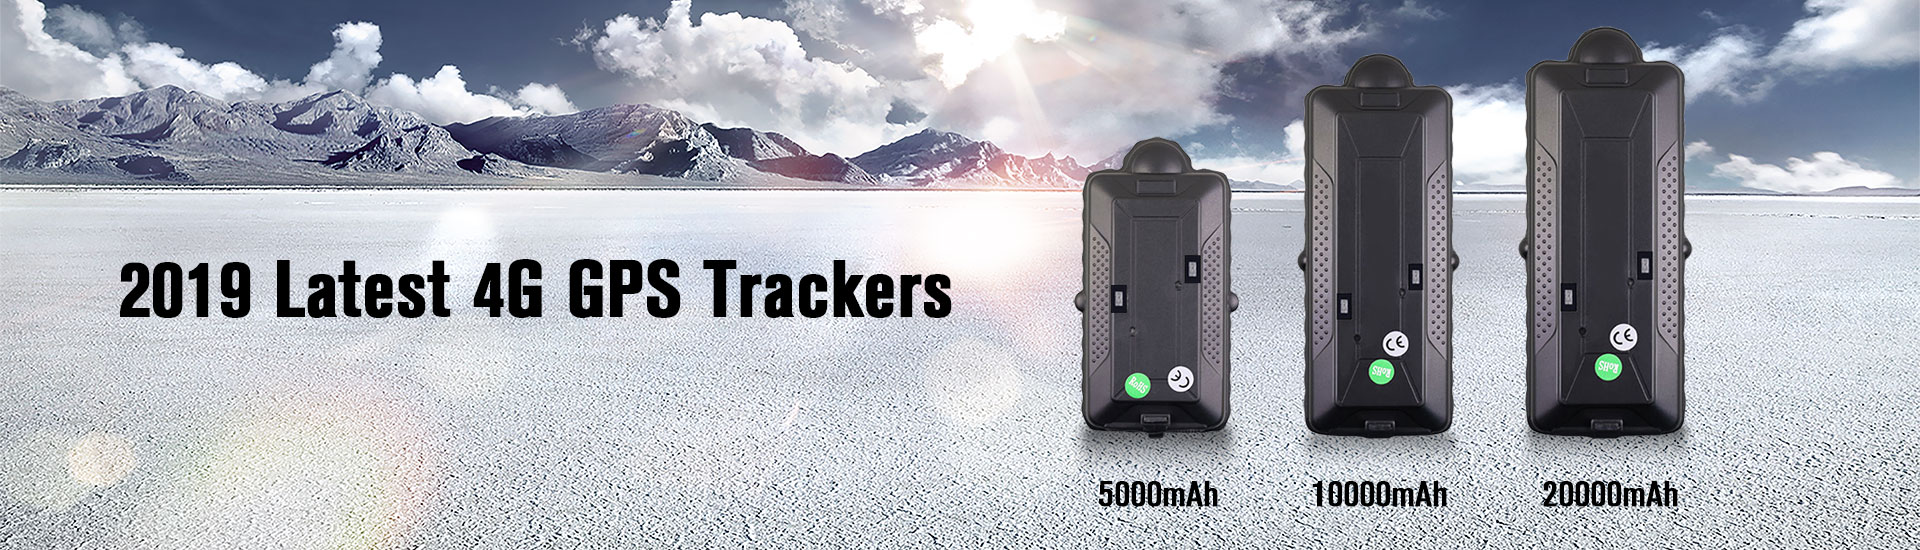 4G GPS Trackers